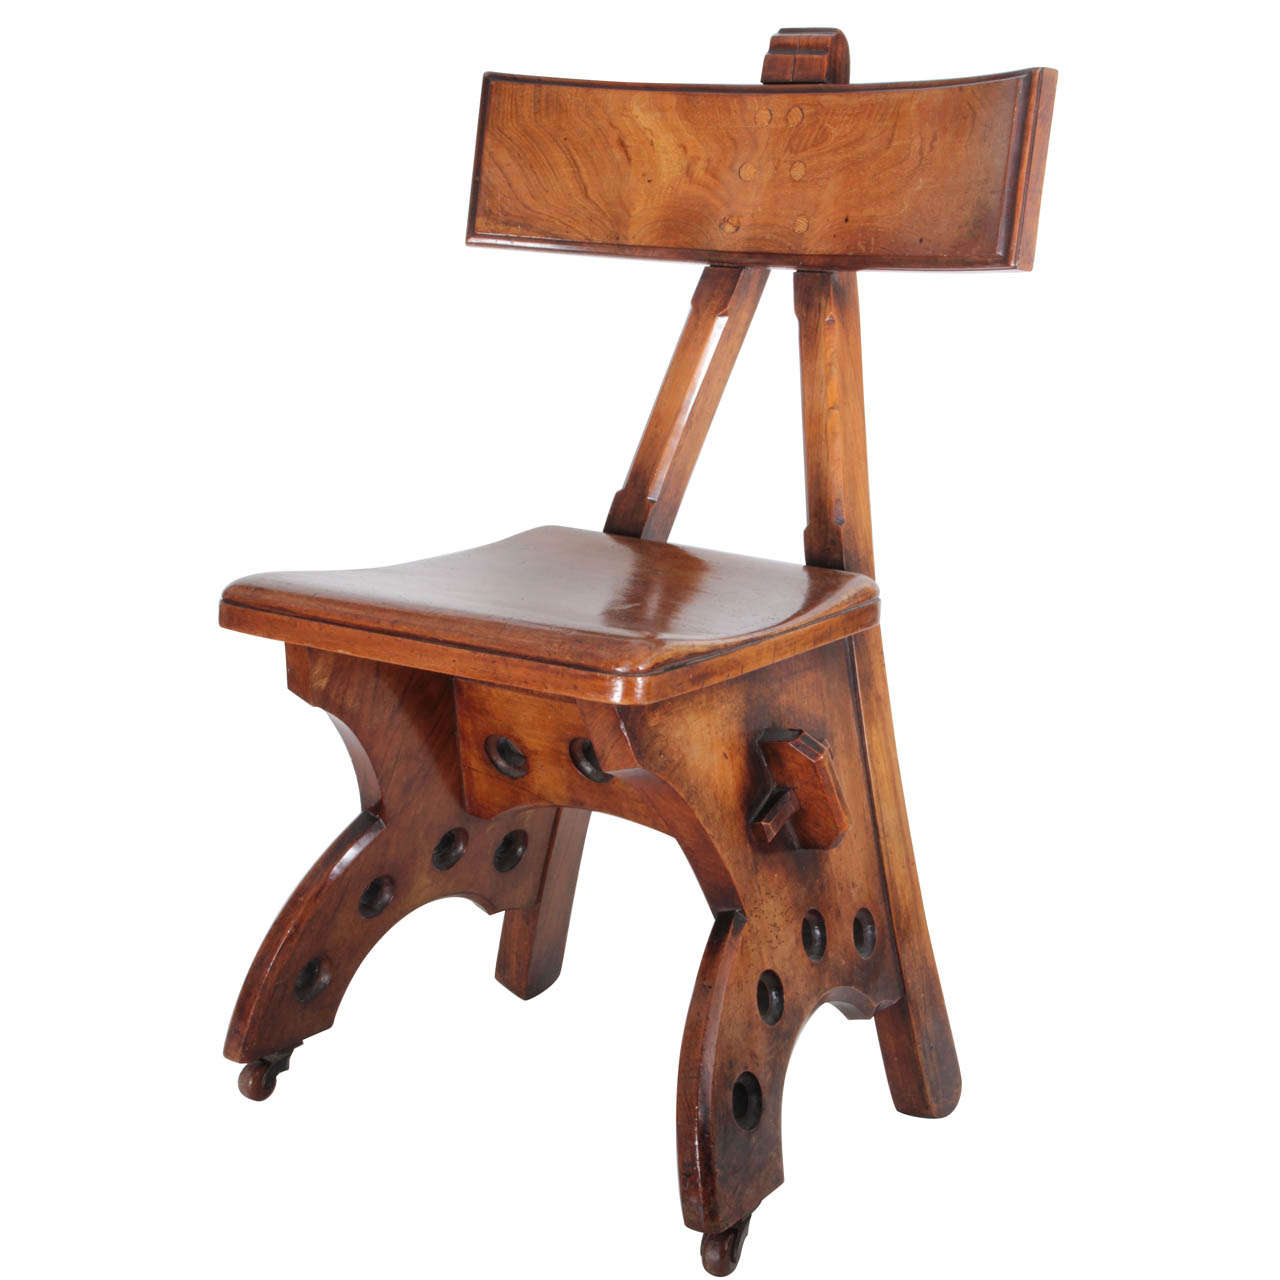 Modern klismos chair - Edward Welby Pugin Quot Granville Quot Early Arts And Crafts